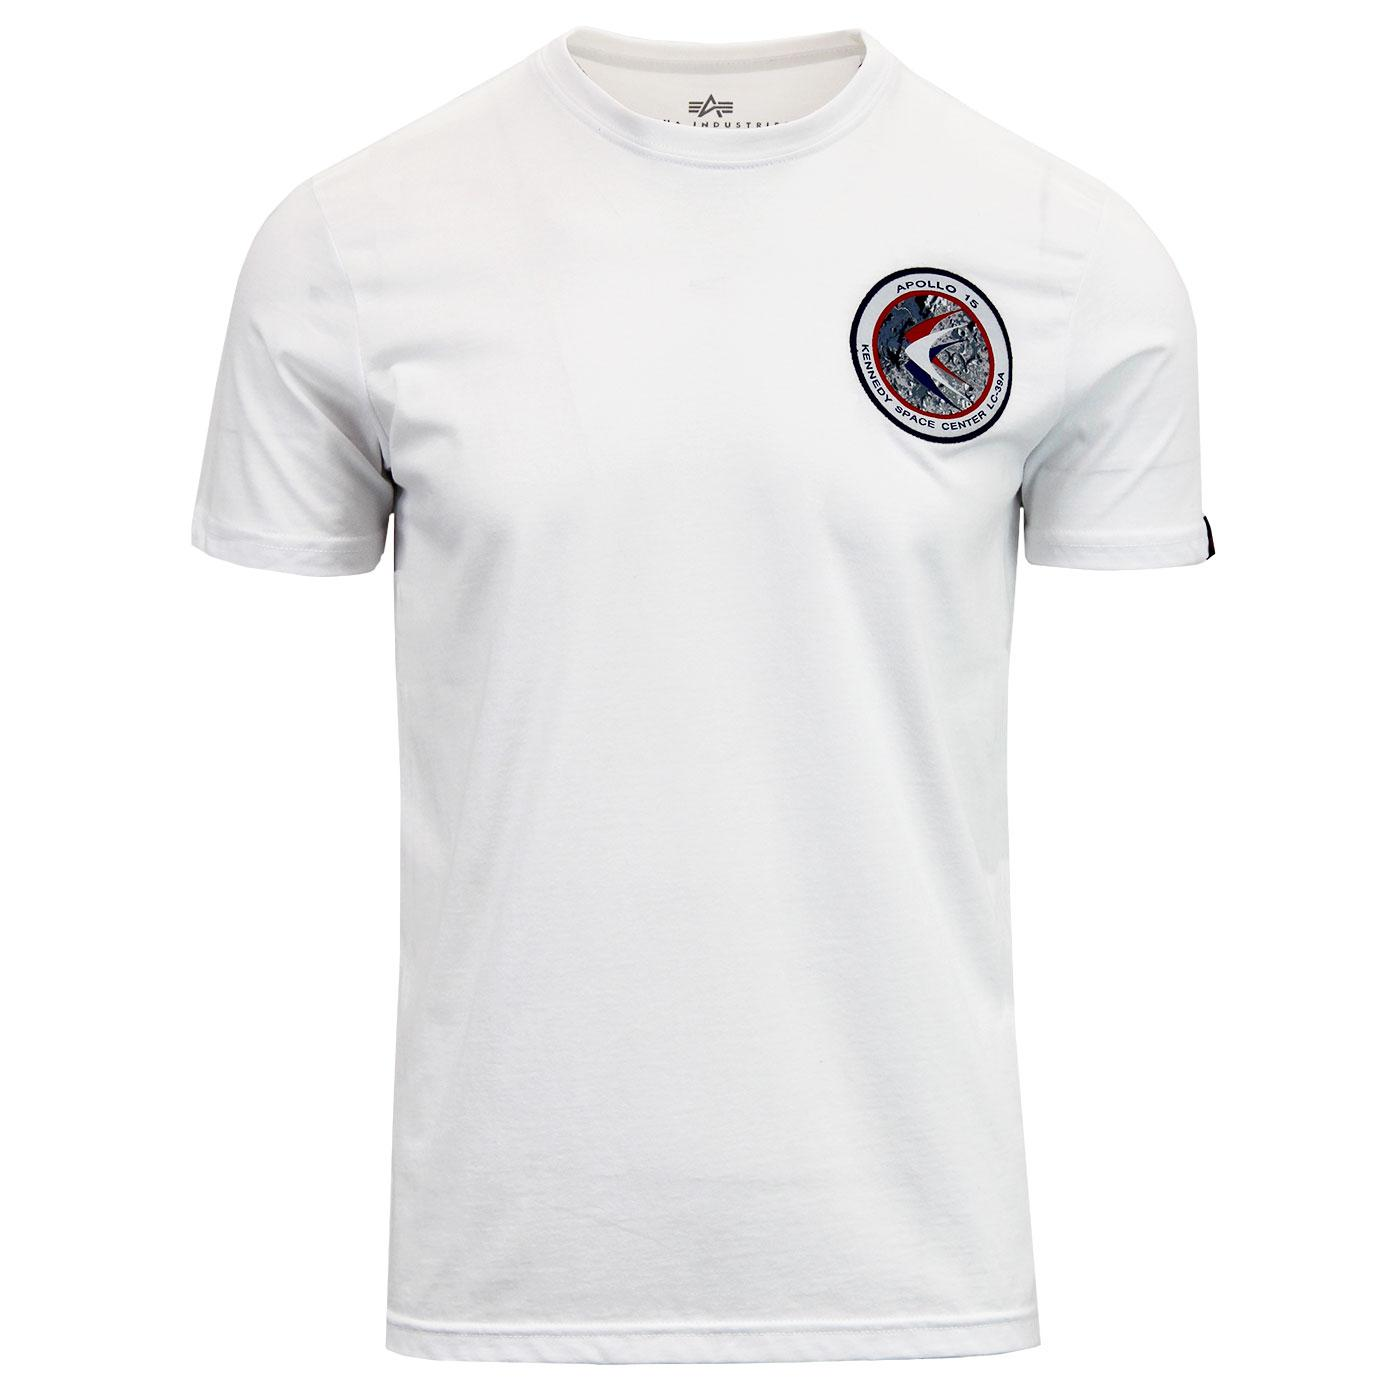 Apollo 15 ALPHA INDUSTRIES 70s mission Badge Tee W